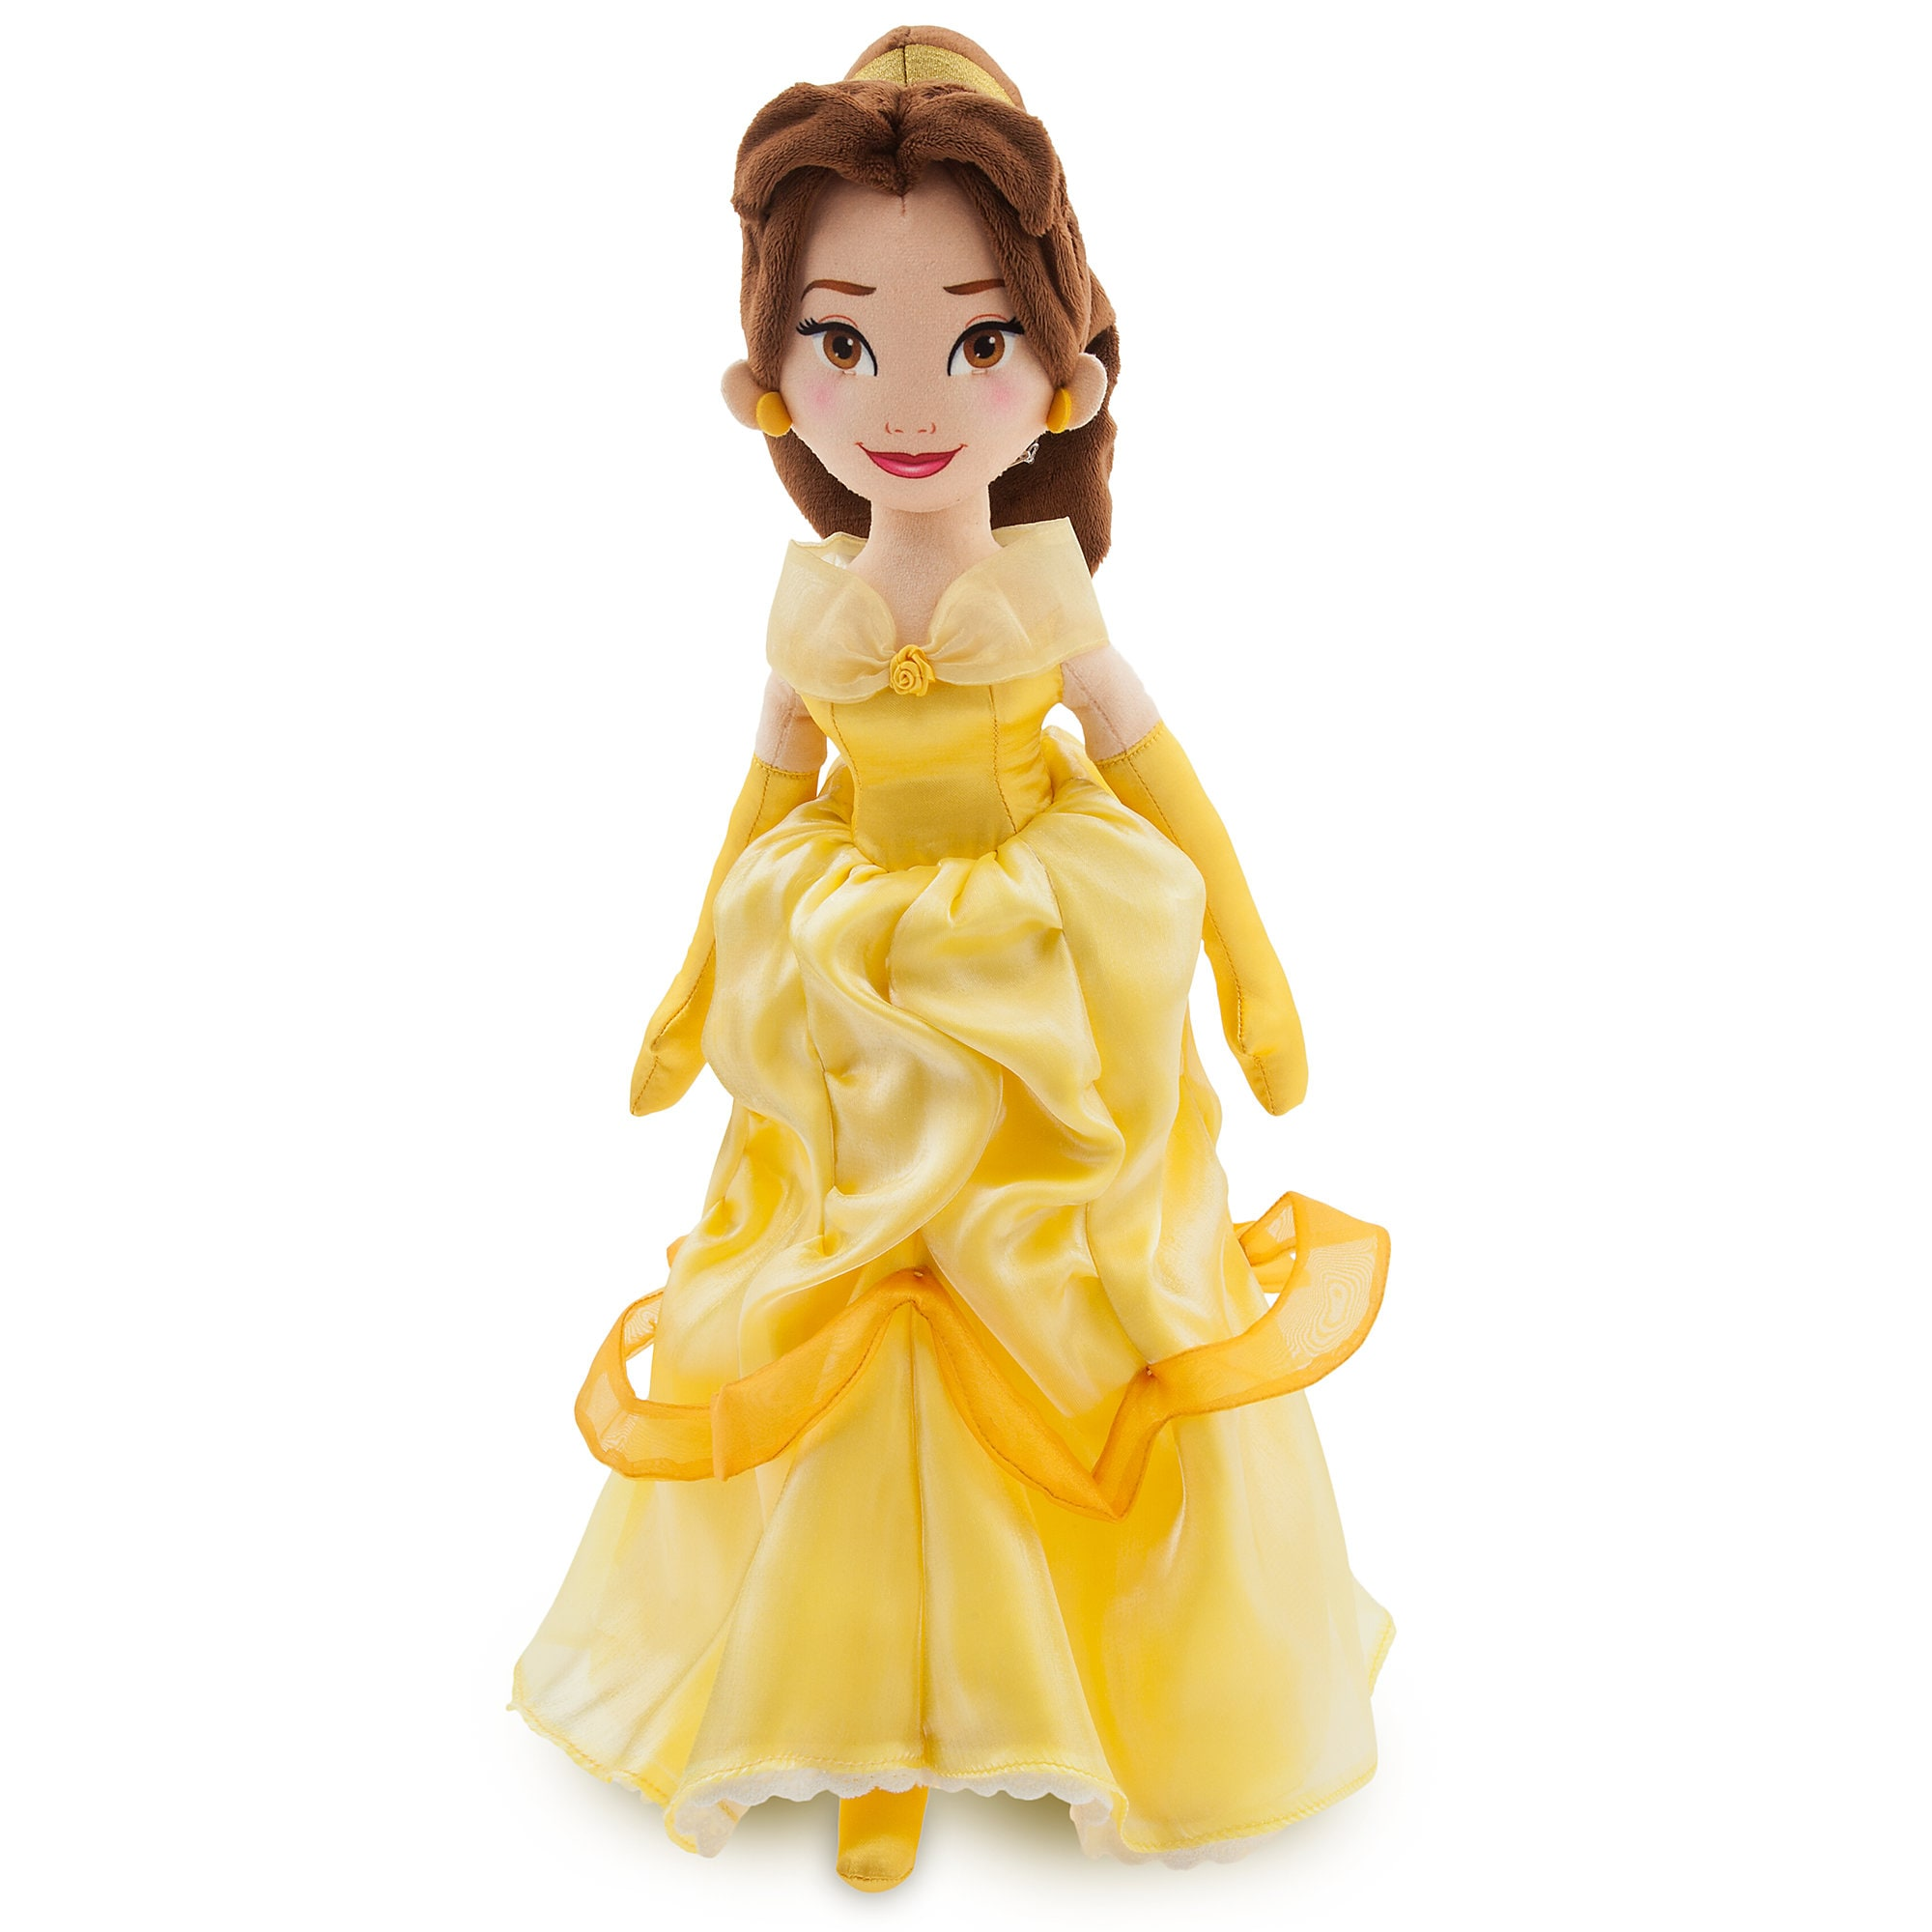 Belle Plush Doll - Beauty and the Beast - Medium - 19''